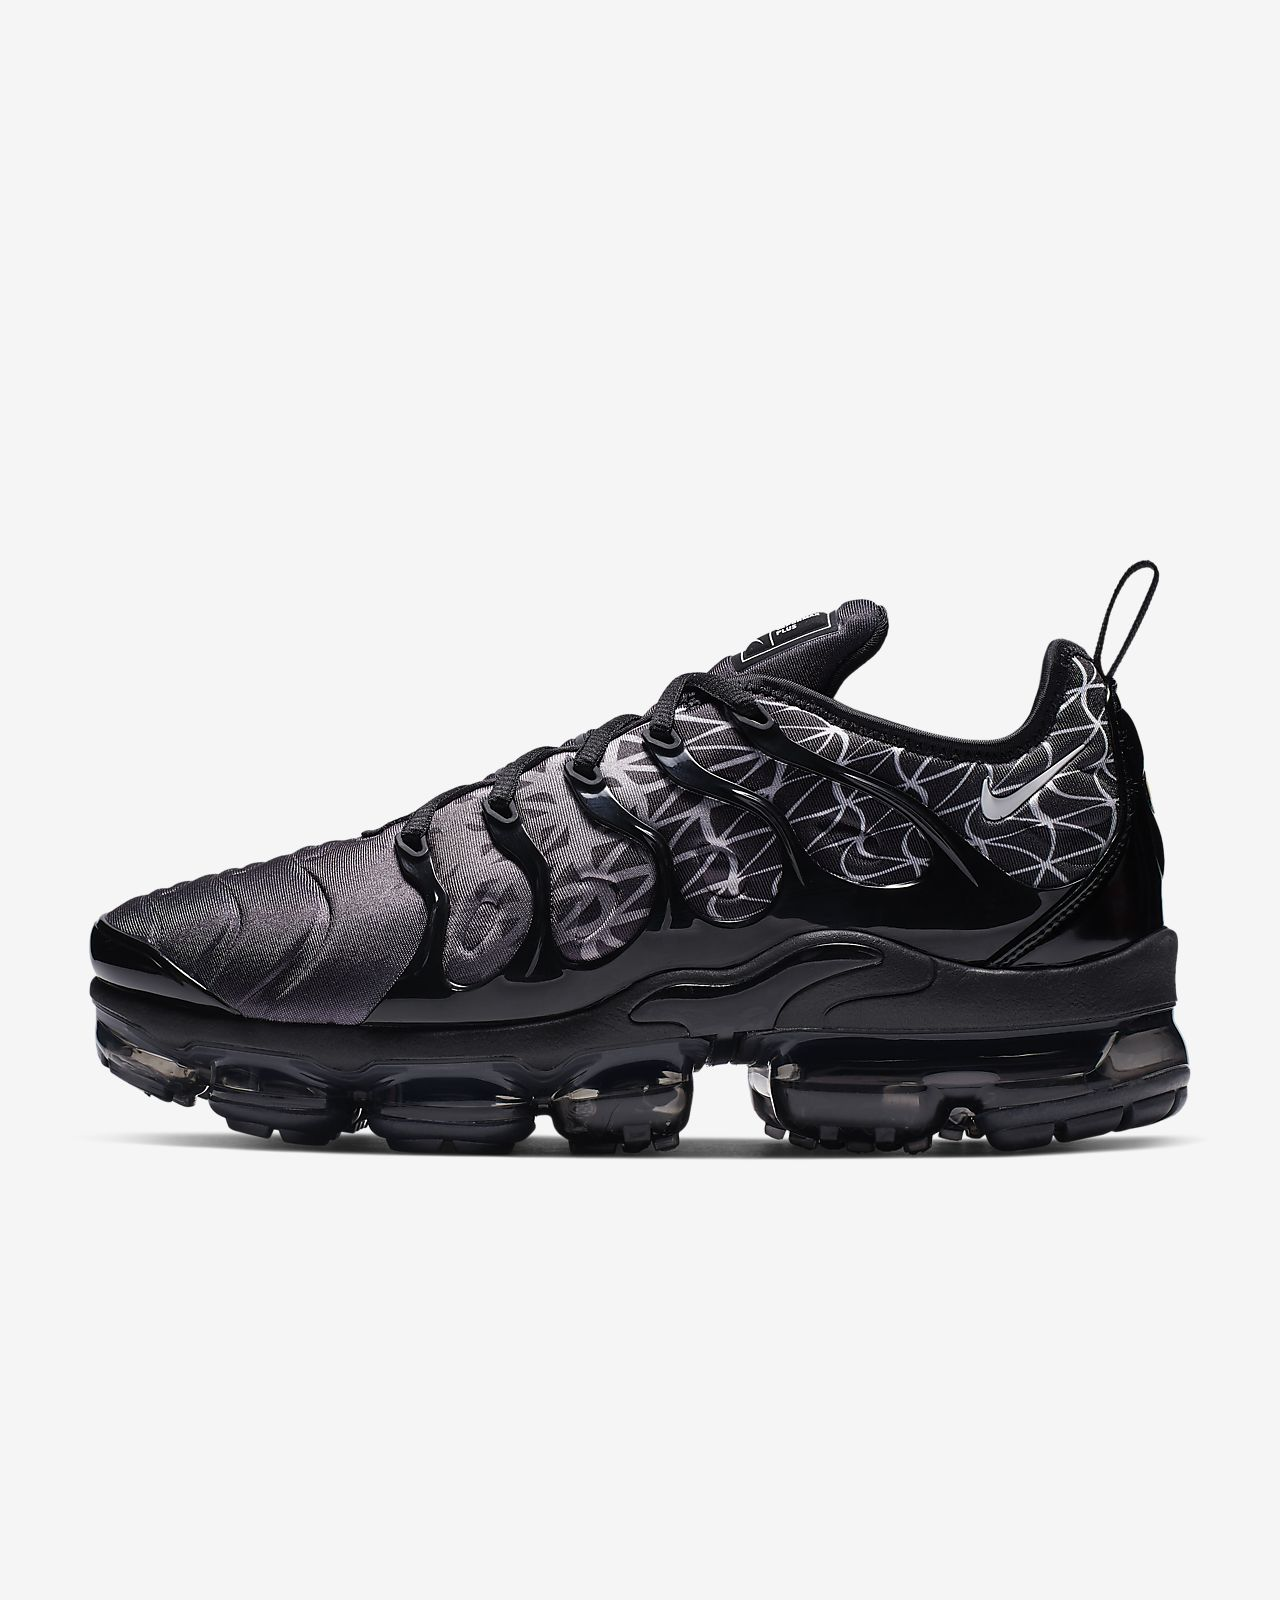 03232b1686 Nike Air VaporMax Plus Men's Shoe. Nike.com CA